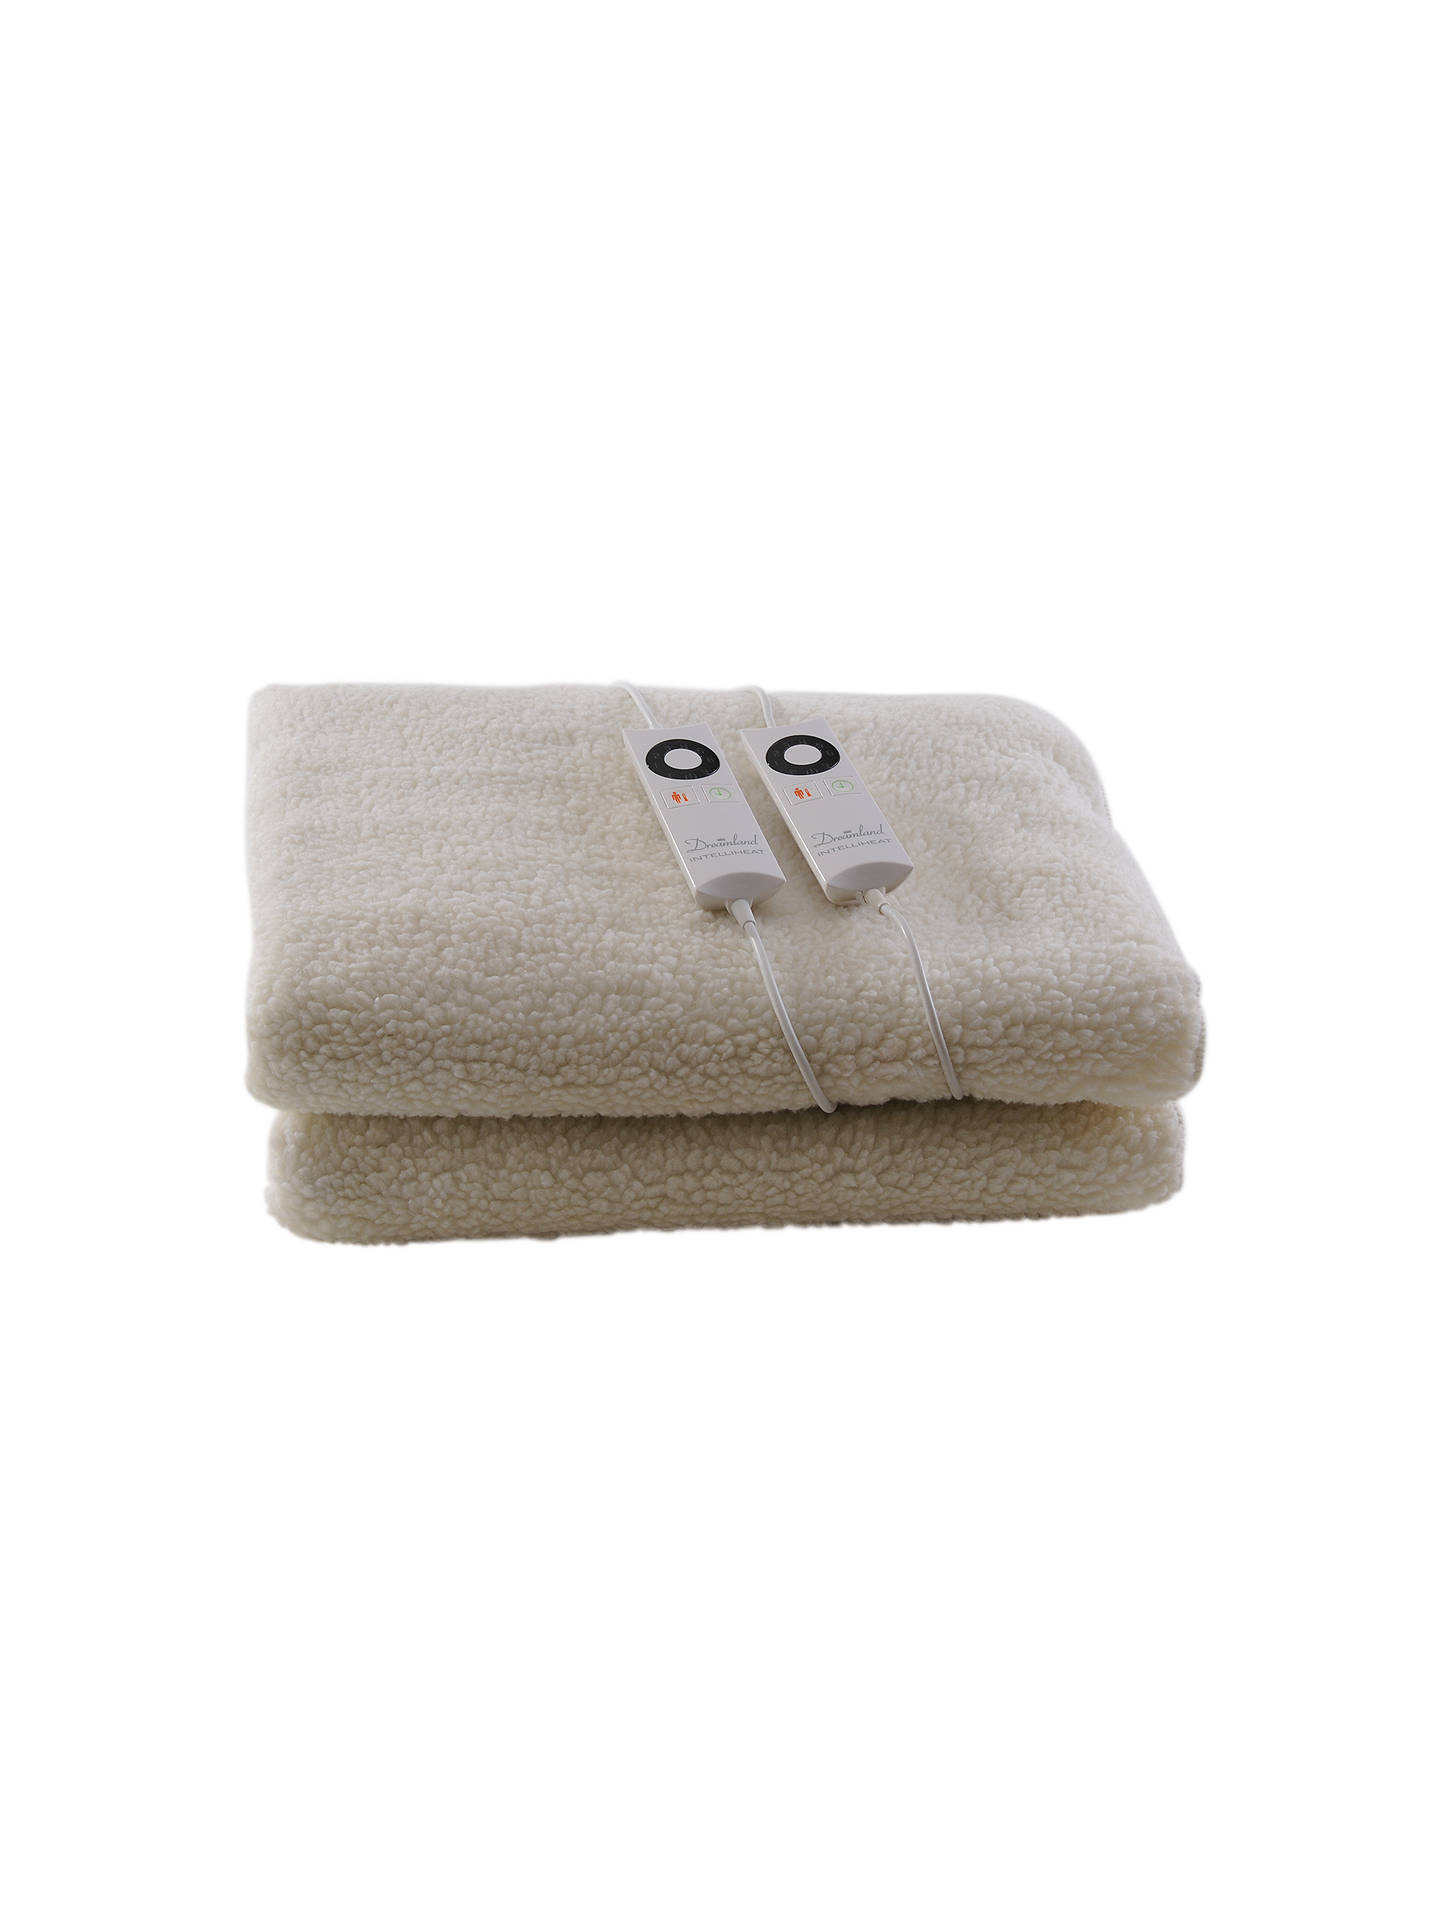 Buy Dreamland 6962 Intelliheat Electric Underblanket, Double Online at johnlewis.com